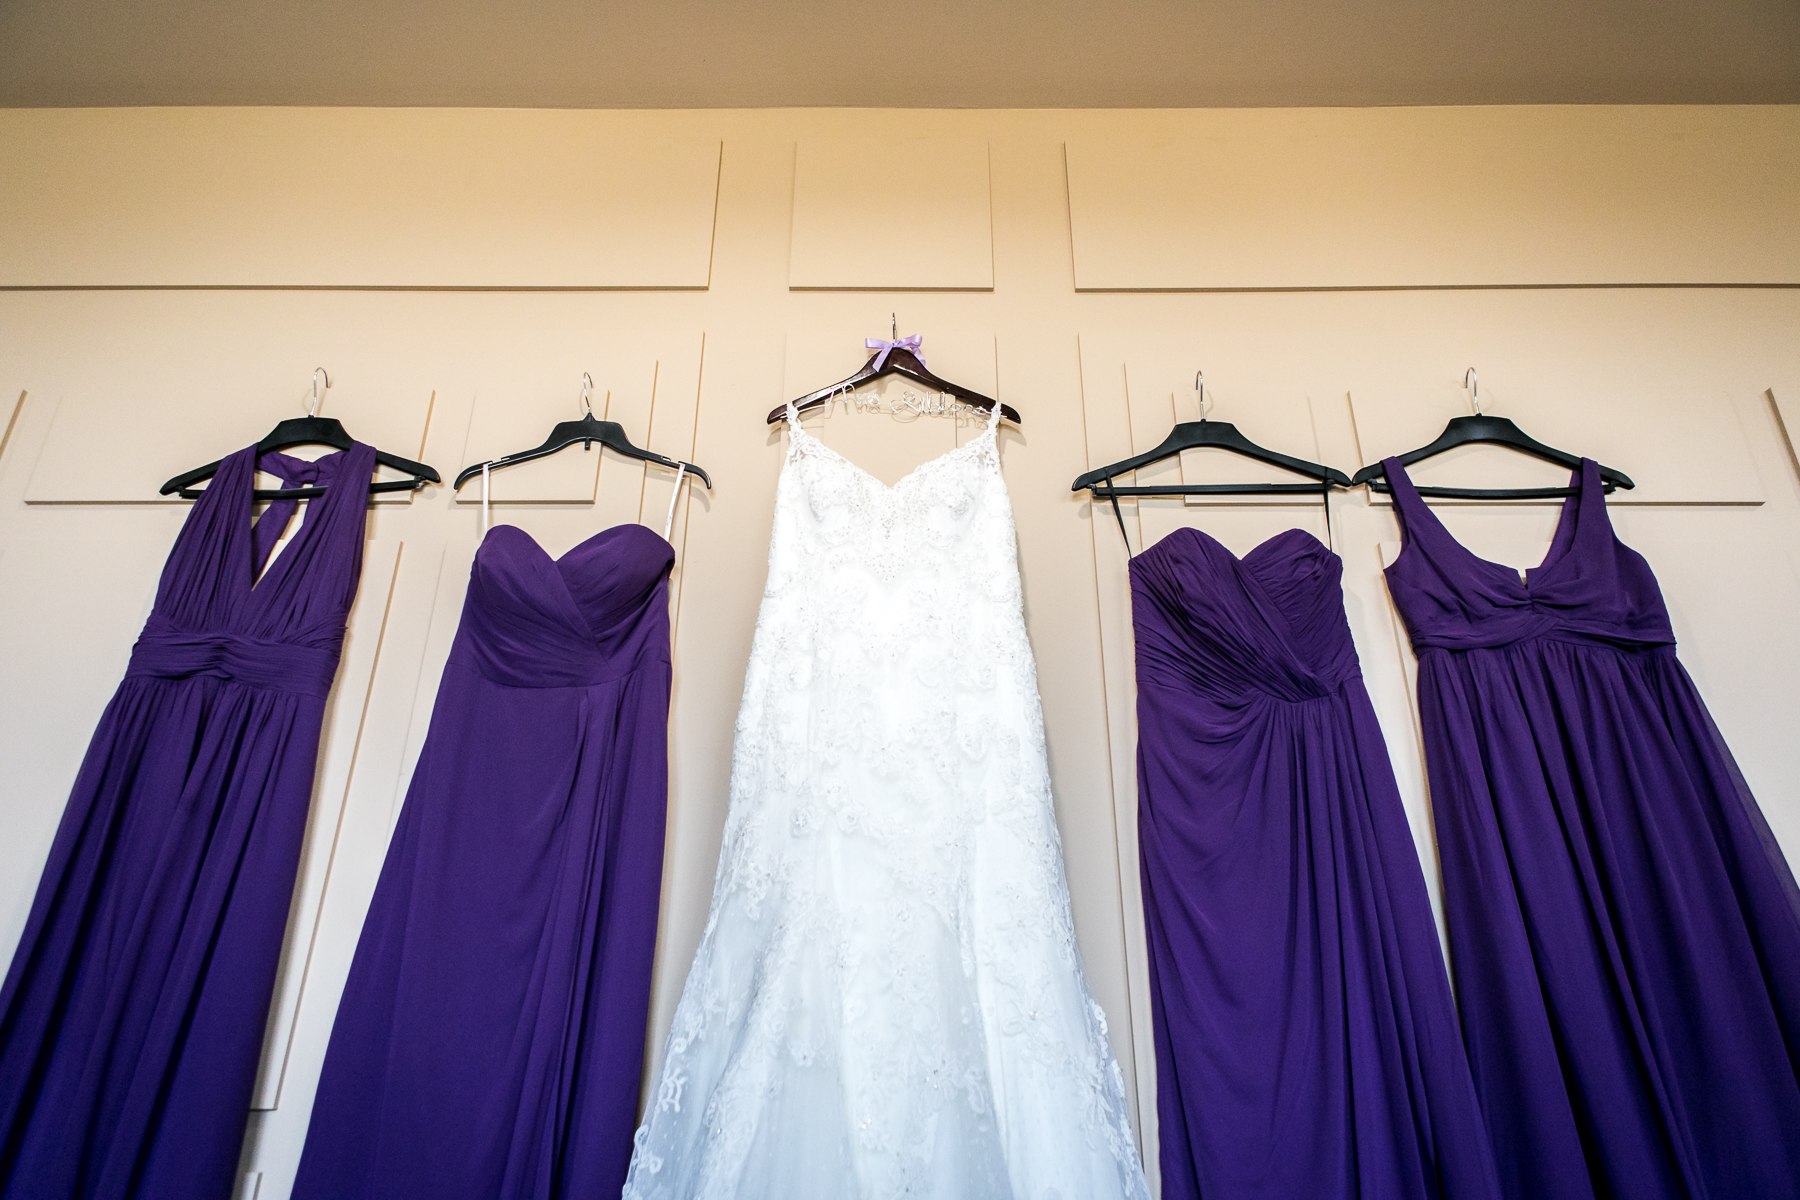 wedding dress with bridesmaids dresses hanged during getting ready at wedding at rancho santa margarita